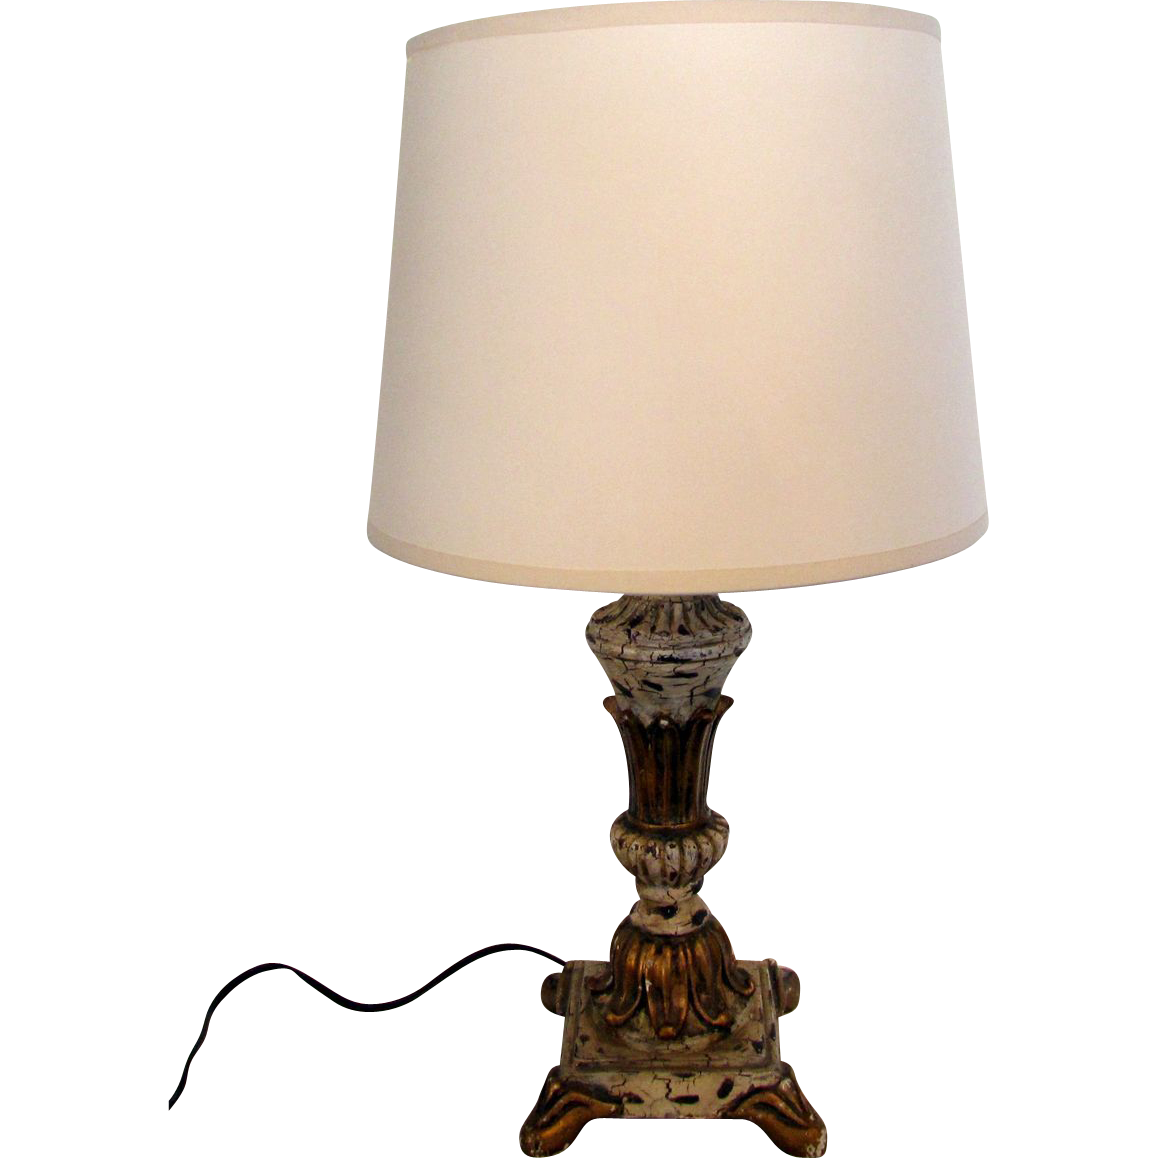 Vintage french wooden table lamp paul corrie interiors for Vintage wooden table lamps